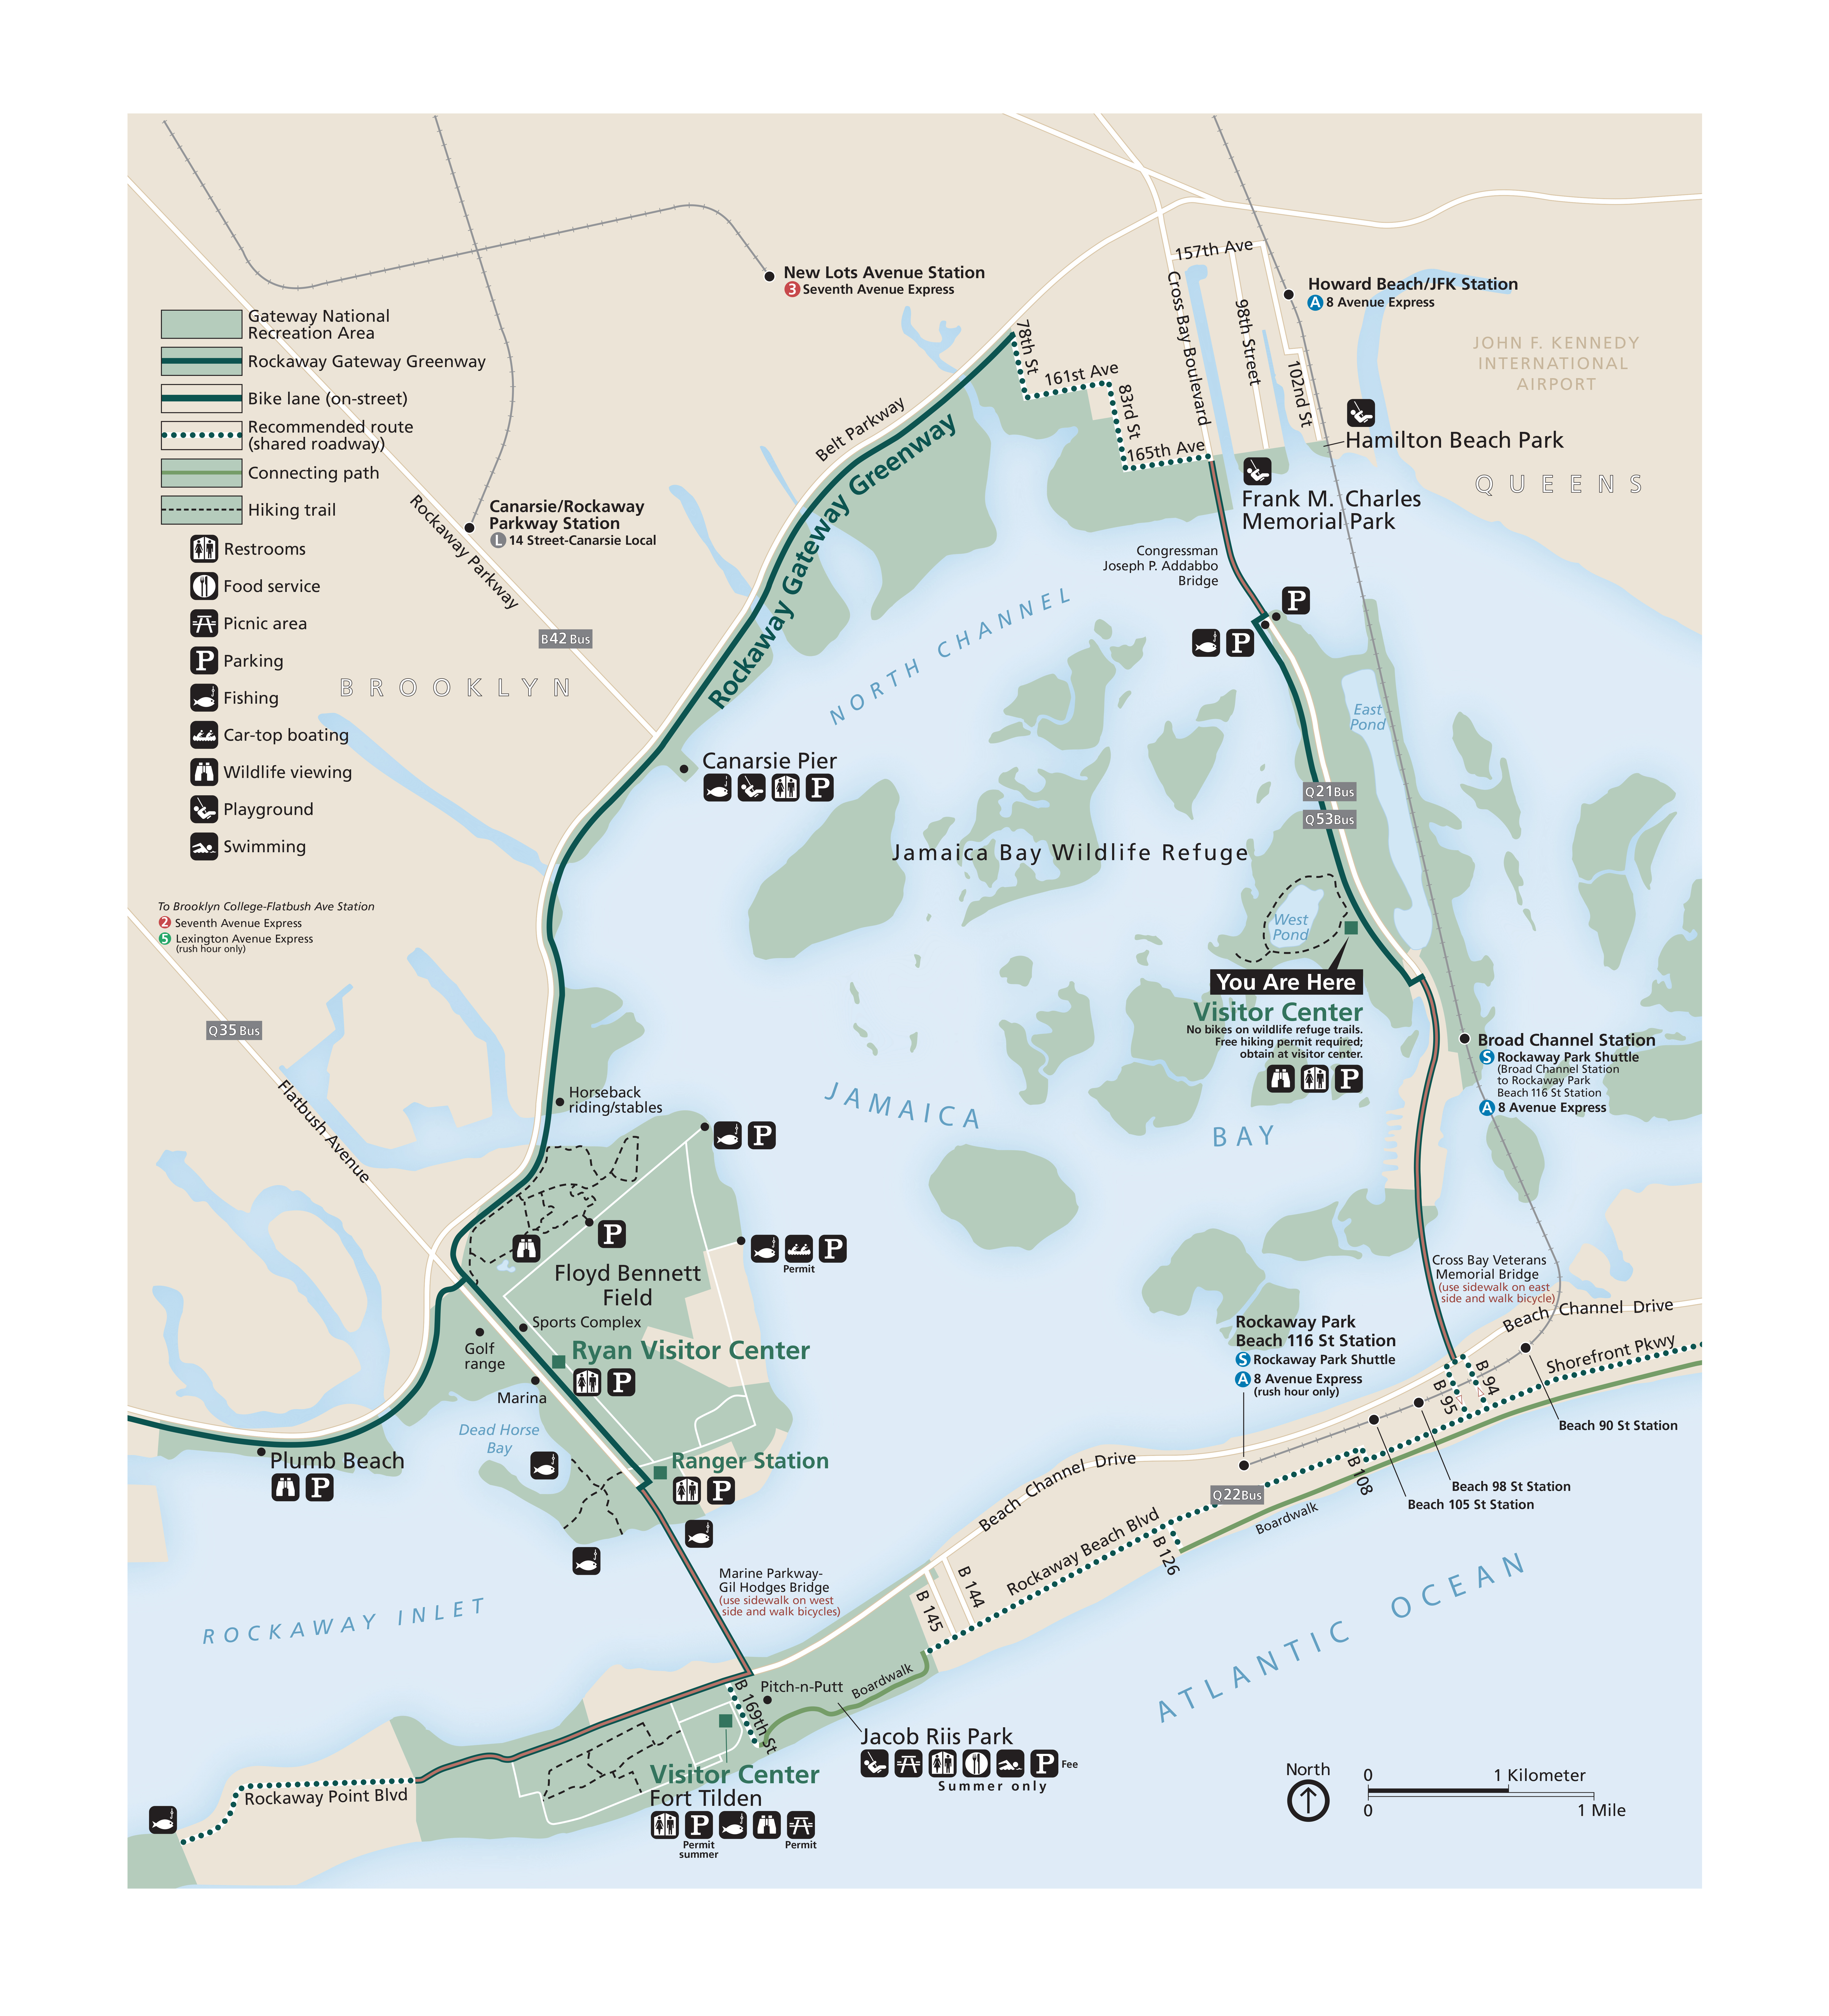 Maps for Jamaica Bay Unit - Gateway National Recreation Area ... Gateway Trail Map on forest park hiking trails map, mn state trails map, gateway to the west on map, kansas trails map, boulder co map, cockaponset state forest haddam map, gateway salt lake city, garfield county road map, twin cities bike map, lake phalen map, st. croix river map, gateway national recreation area map, iowa bike trails map, gateway trail browns creek trail, gateway colorado, gateway canyon map, gateway to hell,